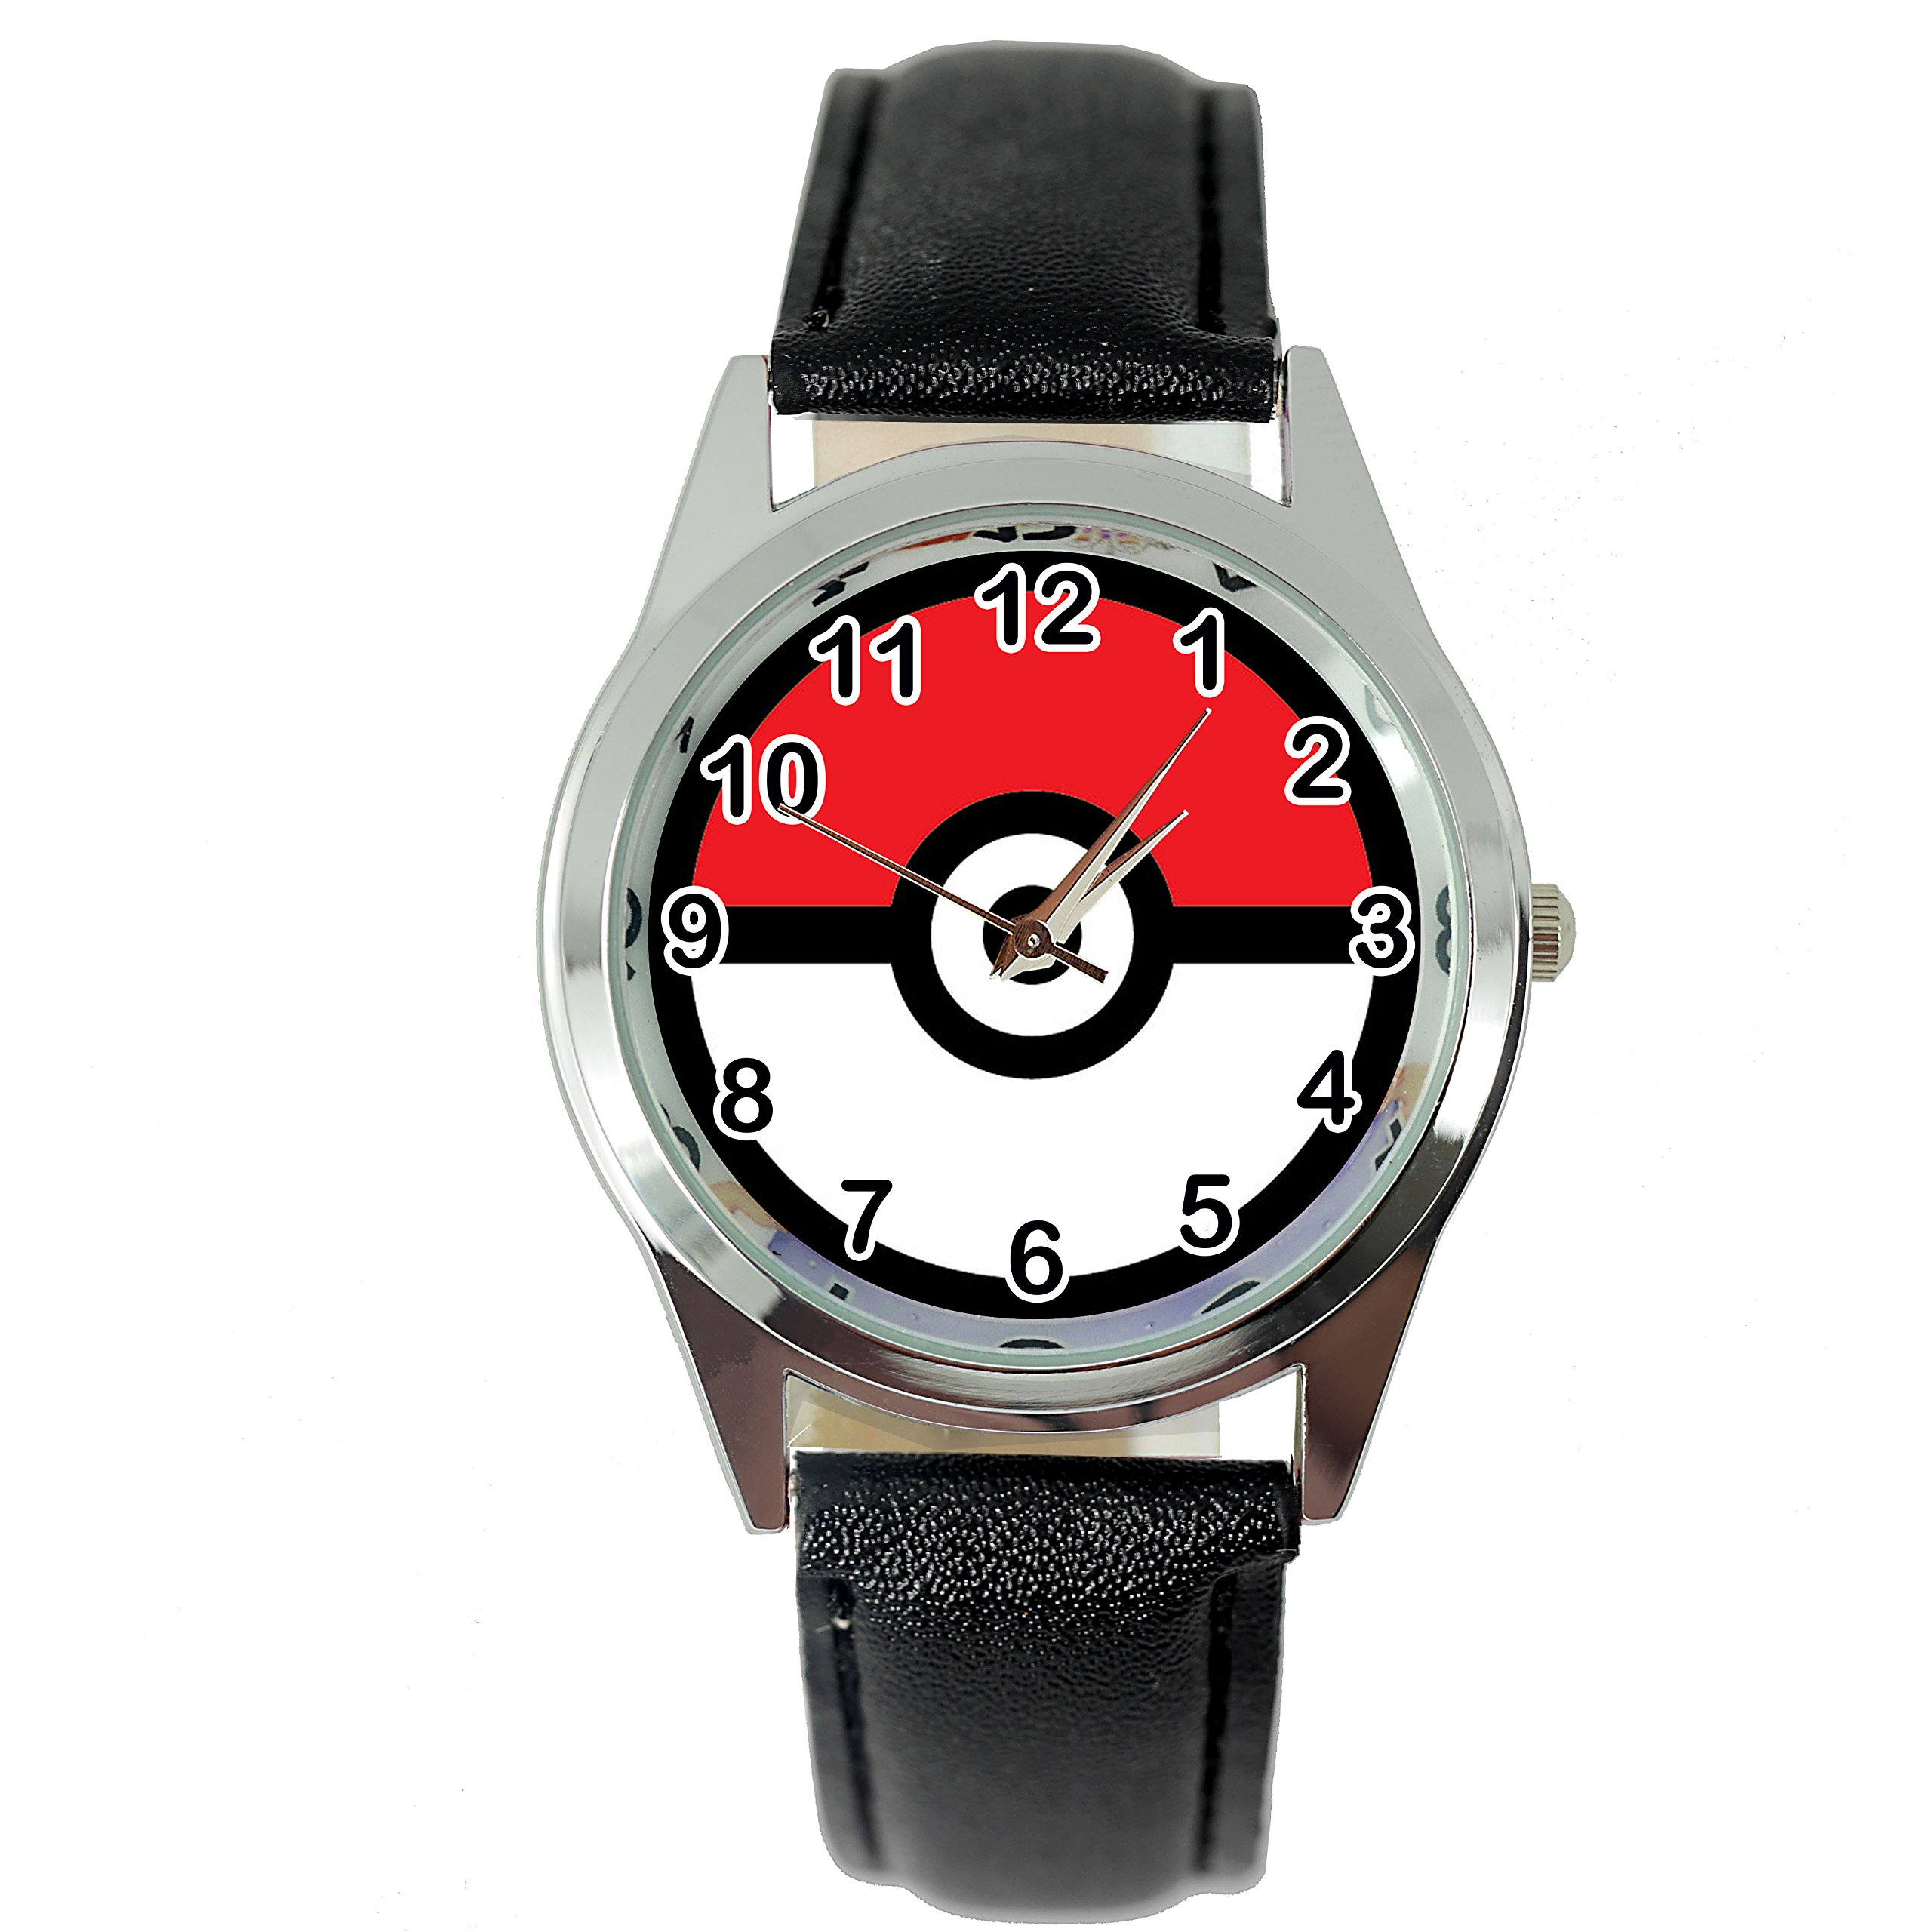 TAPORT POKEMON Quartz Watch BLACK Leather Band +FREE SPARE BATTERY+FREE GIFT BAG …